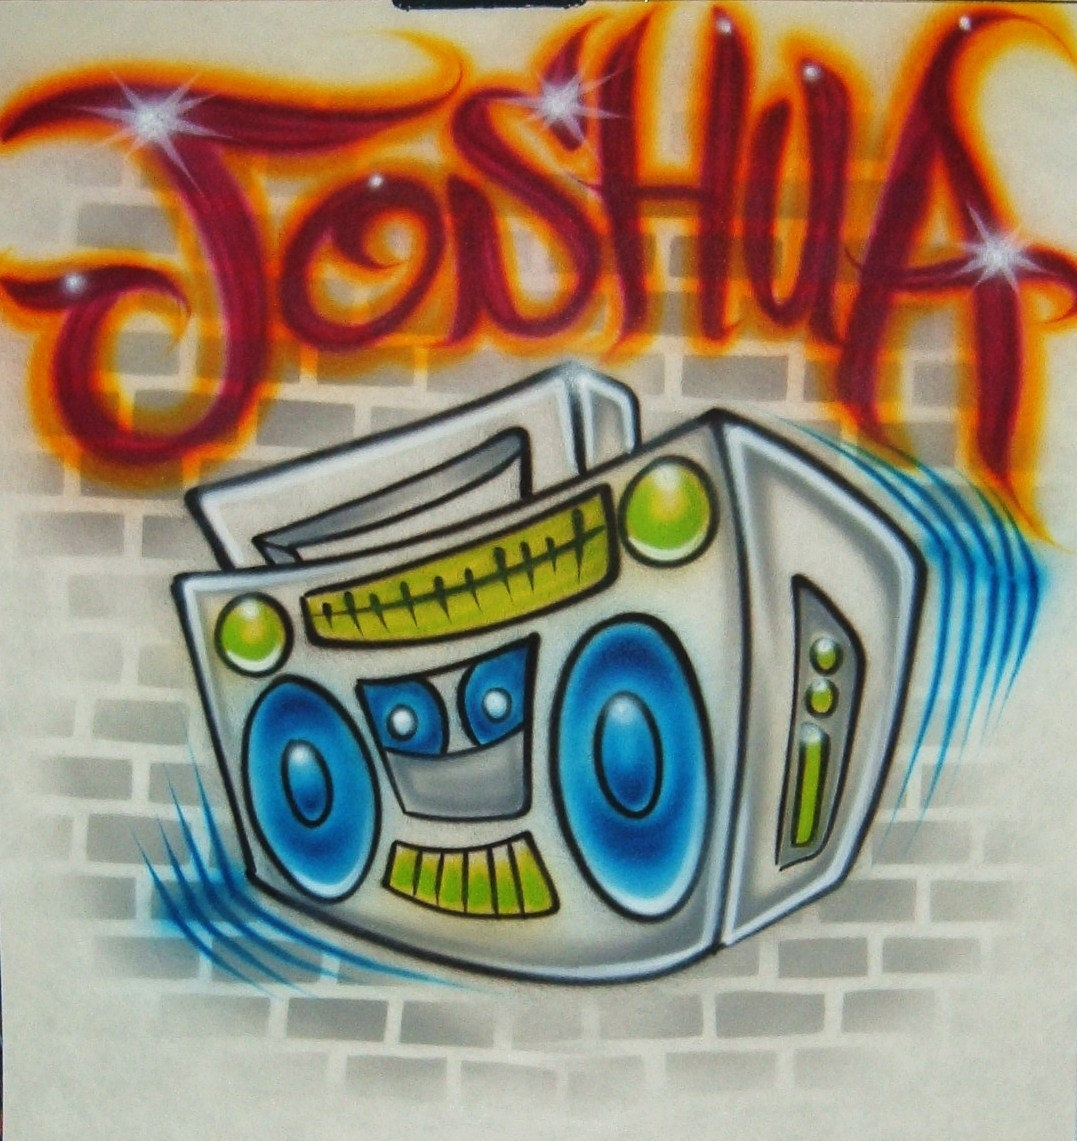 1000+ Images About Graffiti Art On Pinterest